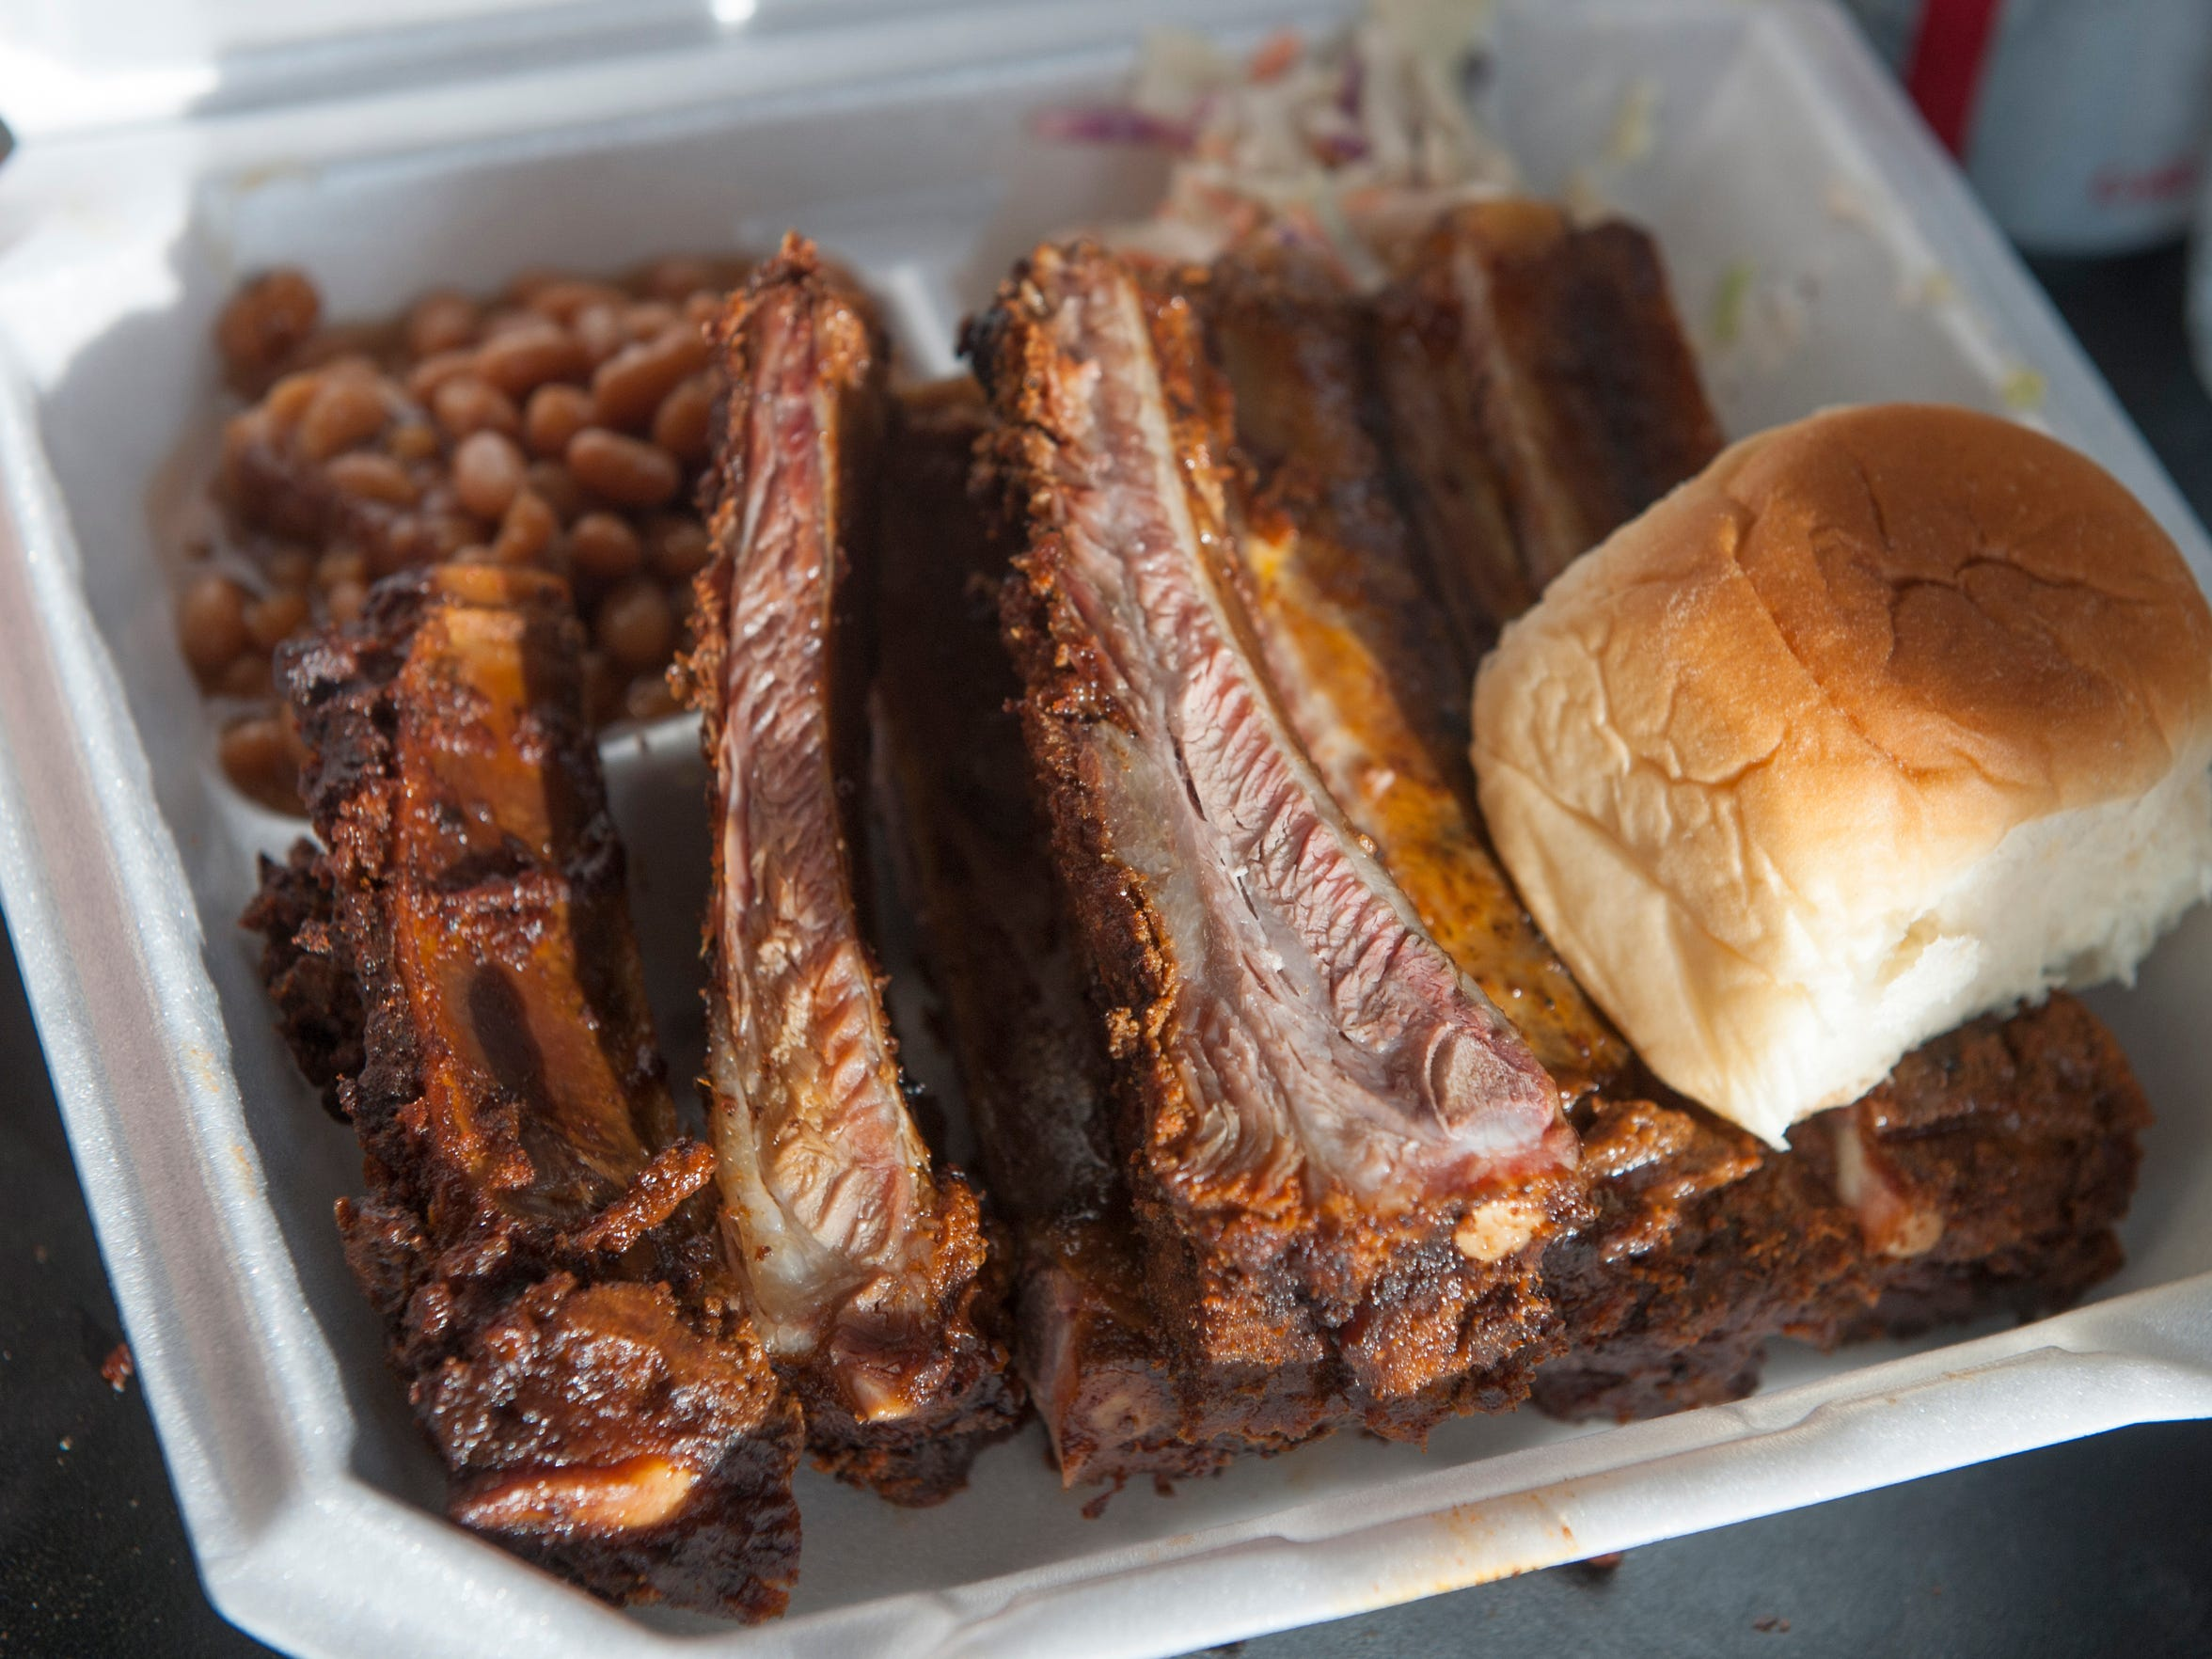 A freshly made rib platter is ready for hungry customers of the Butch's Smack Your Lips BBQ food truck during a June 4 event in Maple Shade.